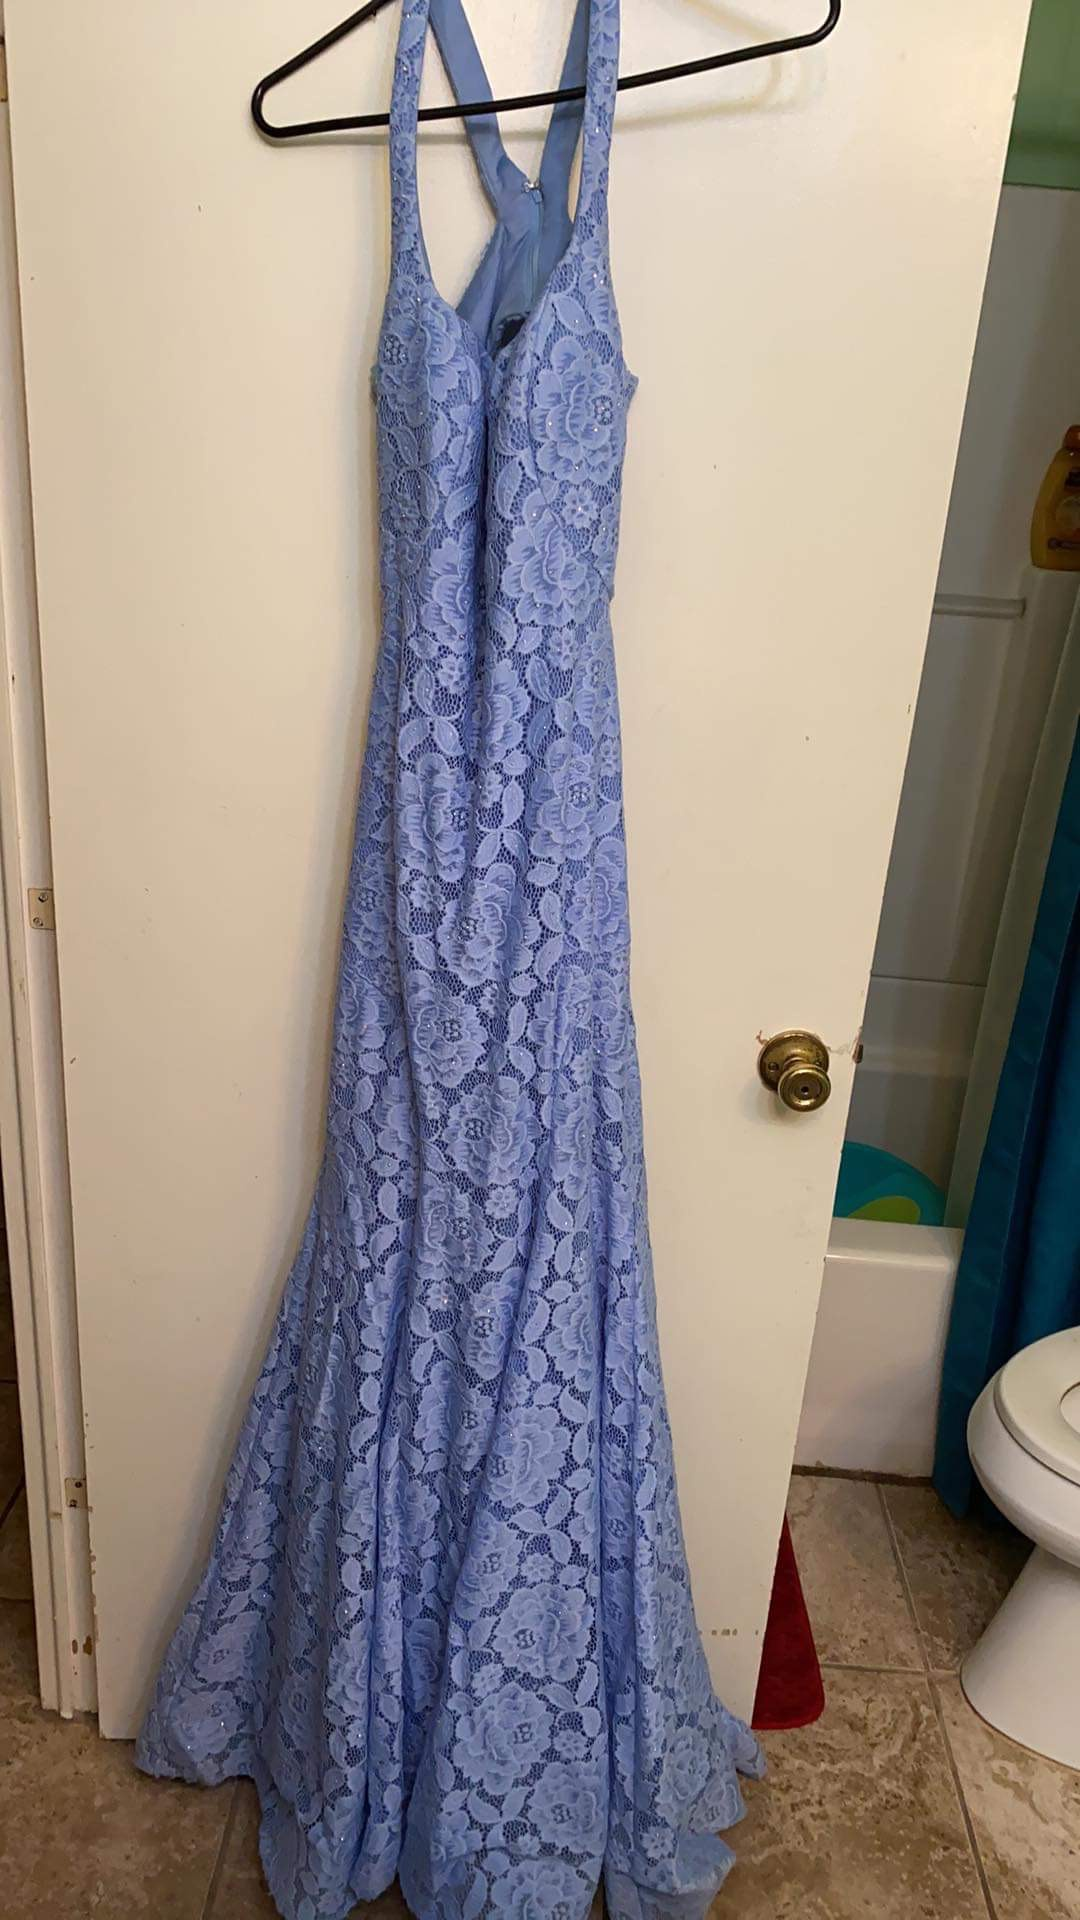 La Femme Blue Size 10 Tall Height Lace Mermaid Dress on Queenly